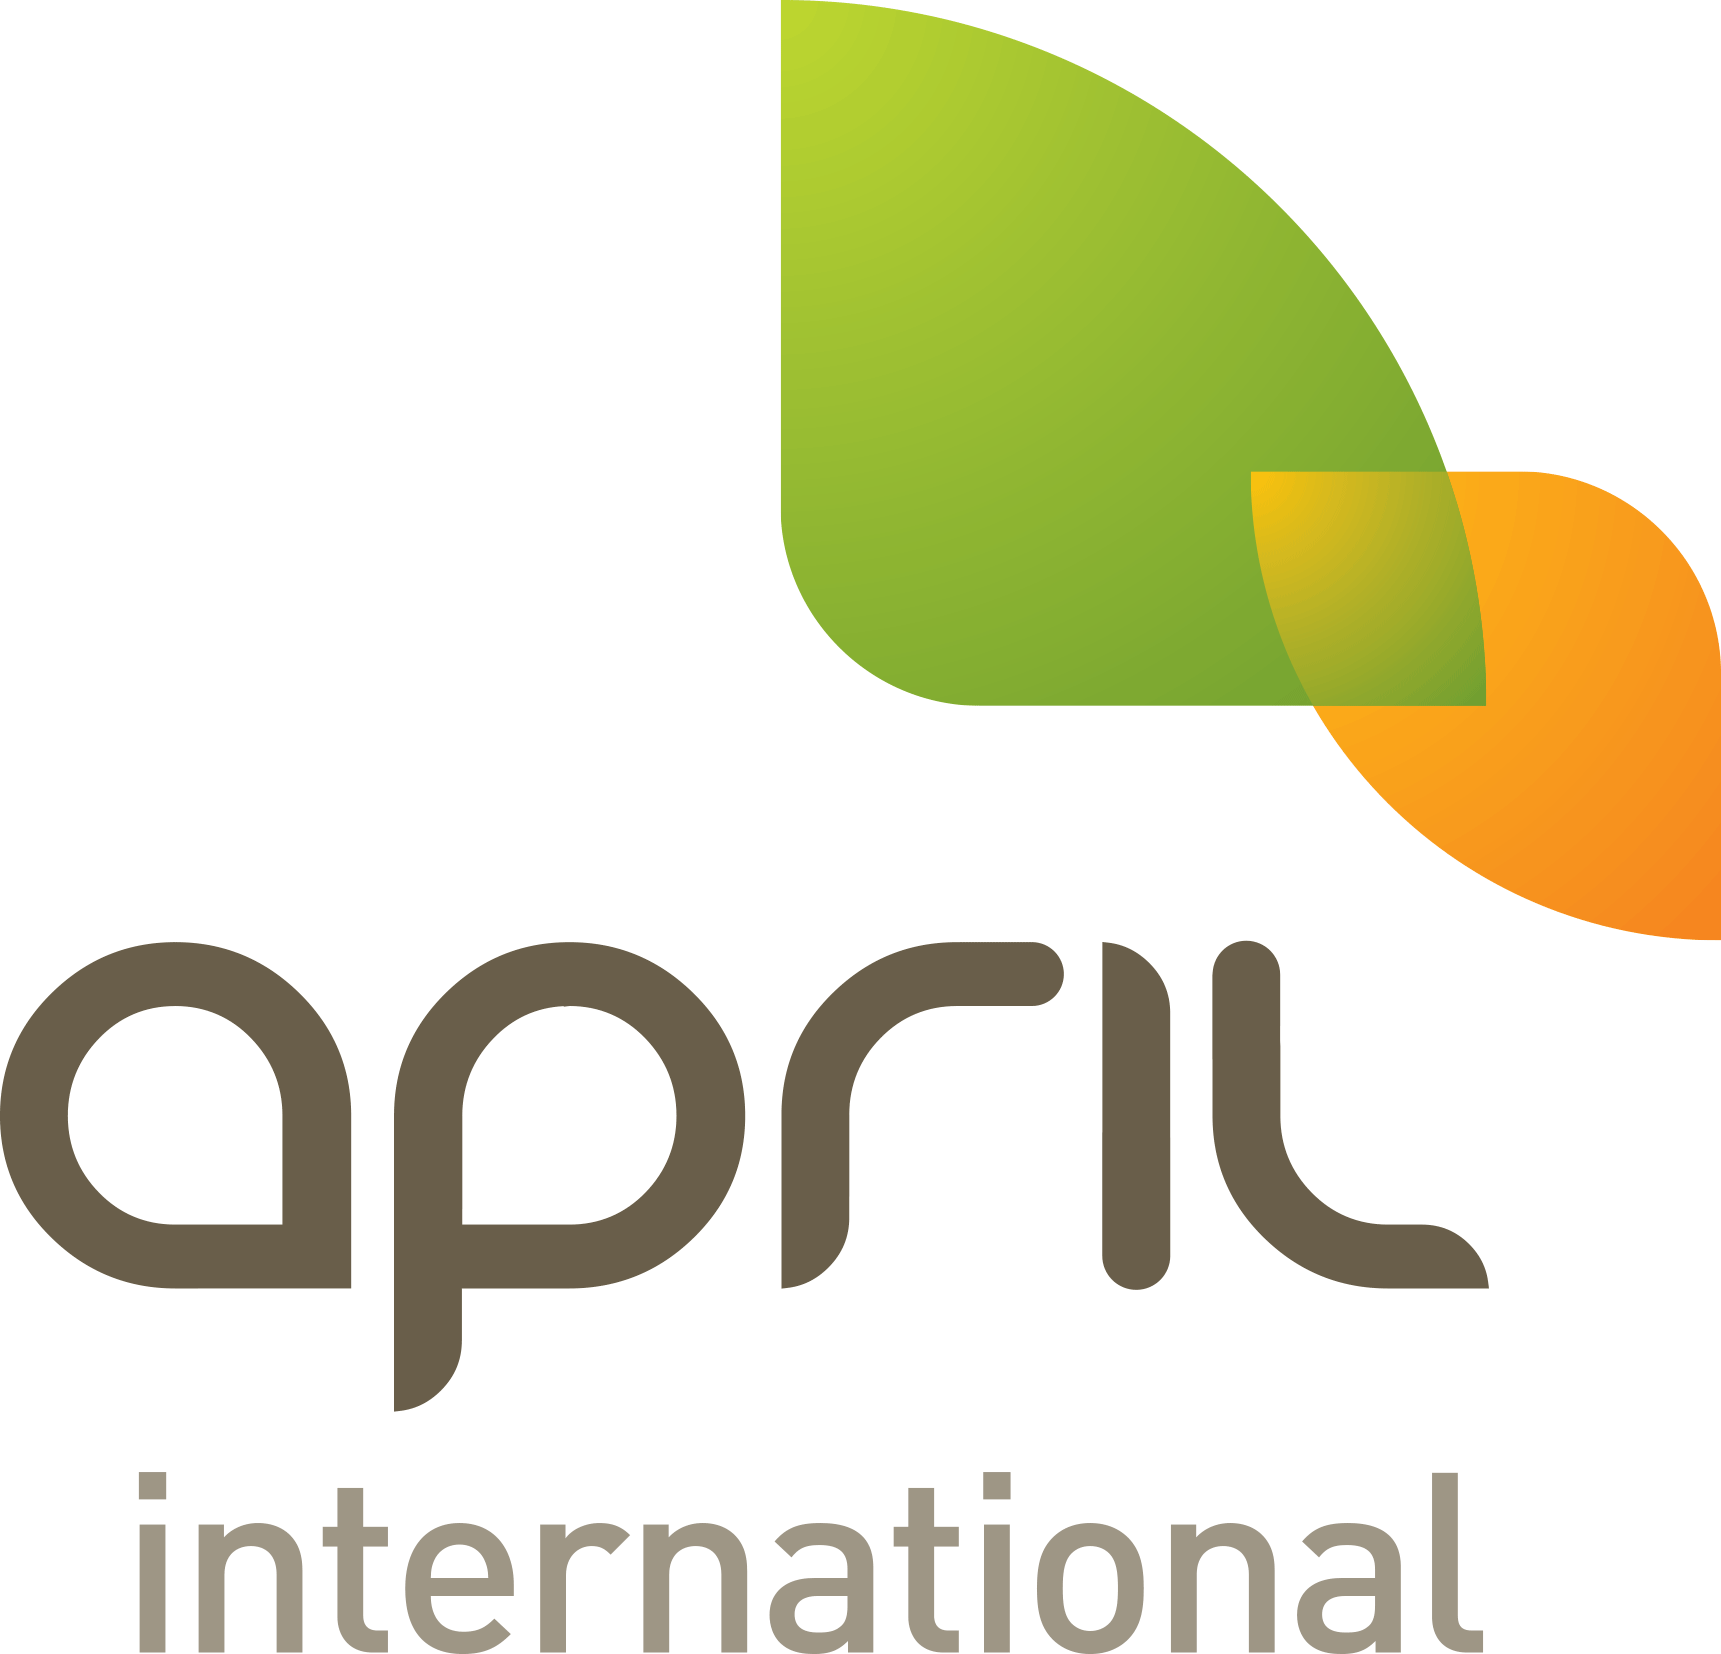 APRIL international expat integration